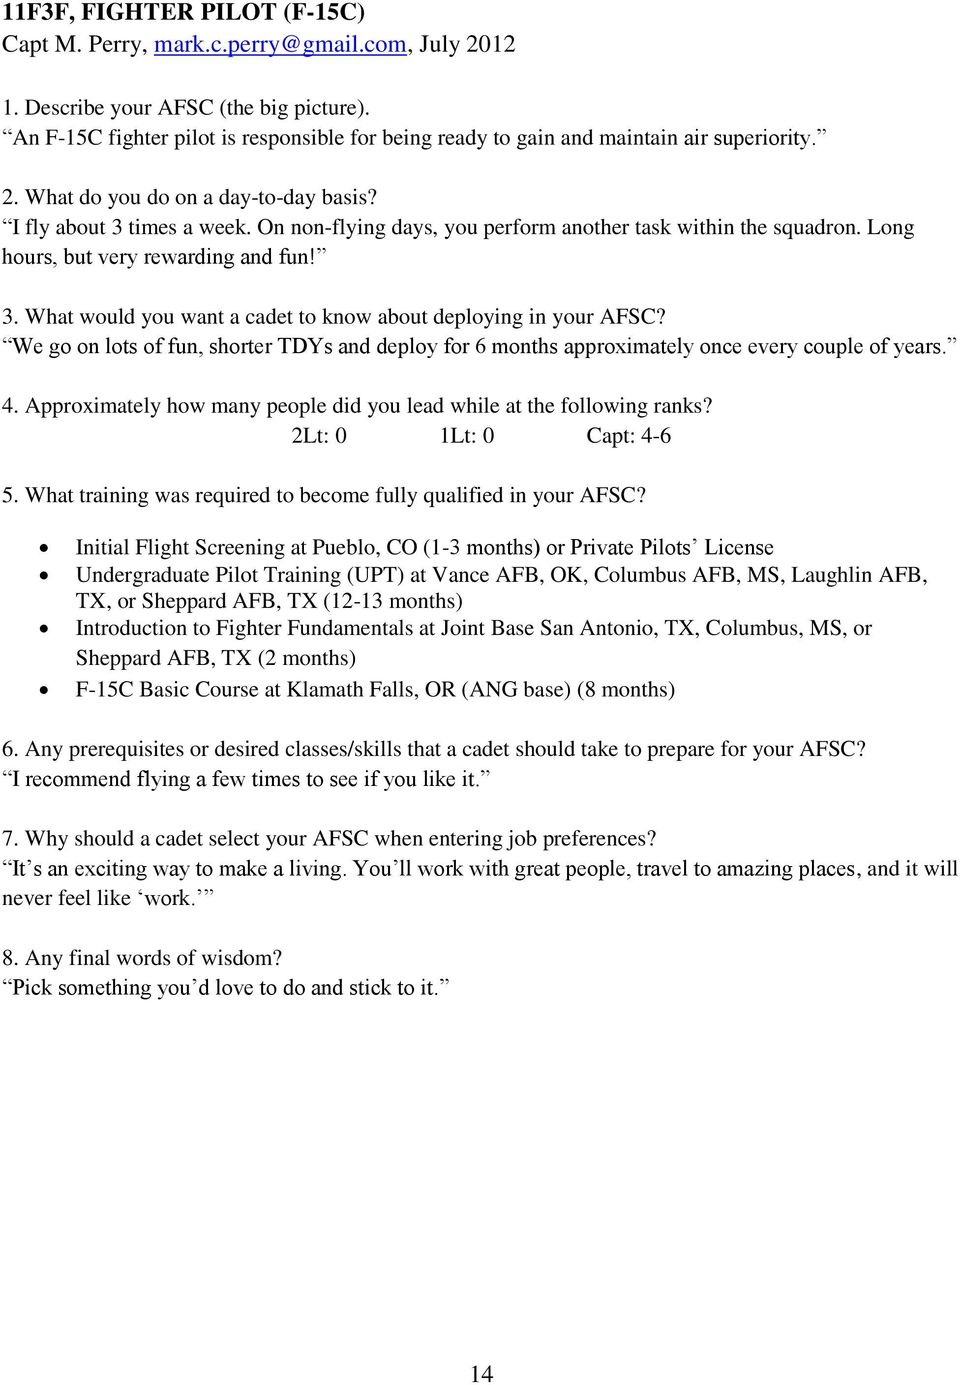 Afsc Guide Cgo Perspectives Pdf Airsuperiority Weekly Digital Timer Circuit We Go On Lots Of Fun Shorter Tdys And Deploy For 6 Months Approximately Once